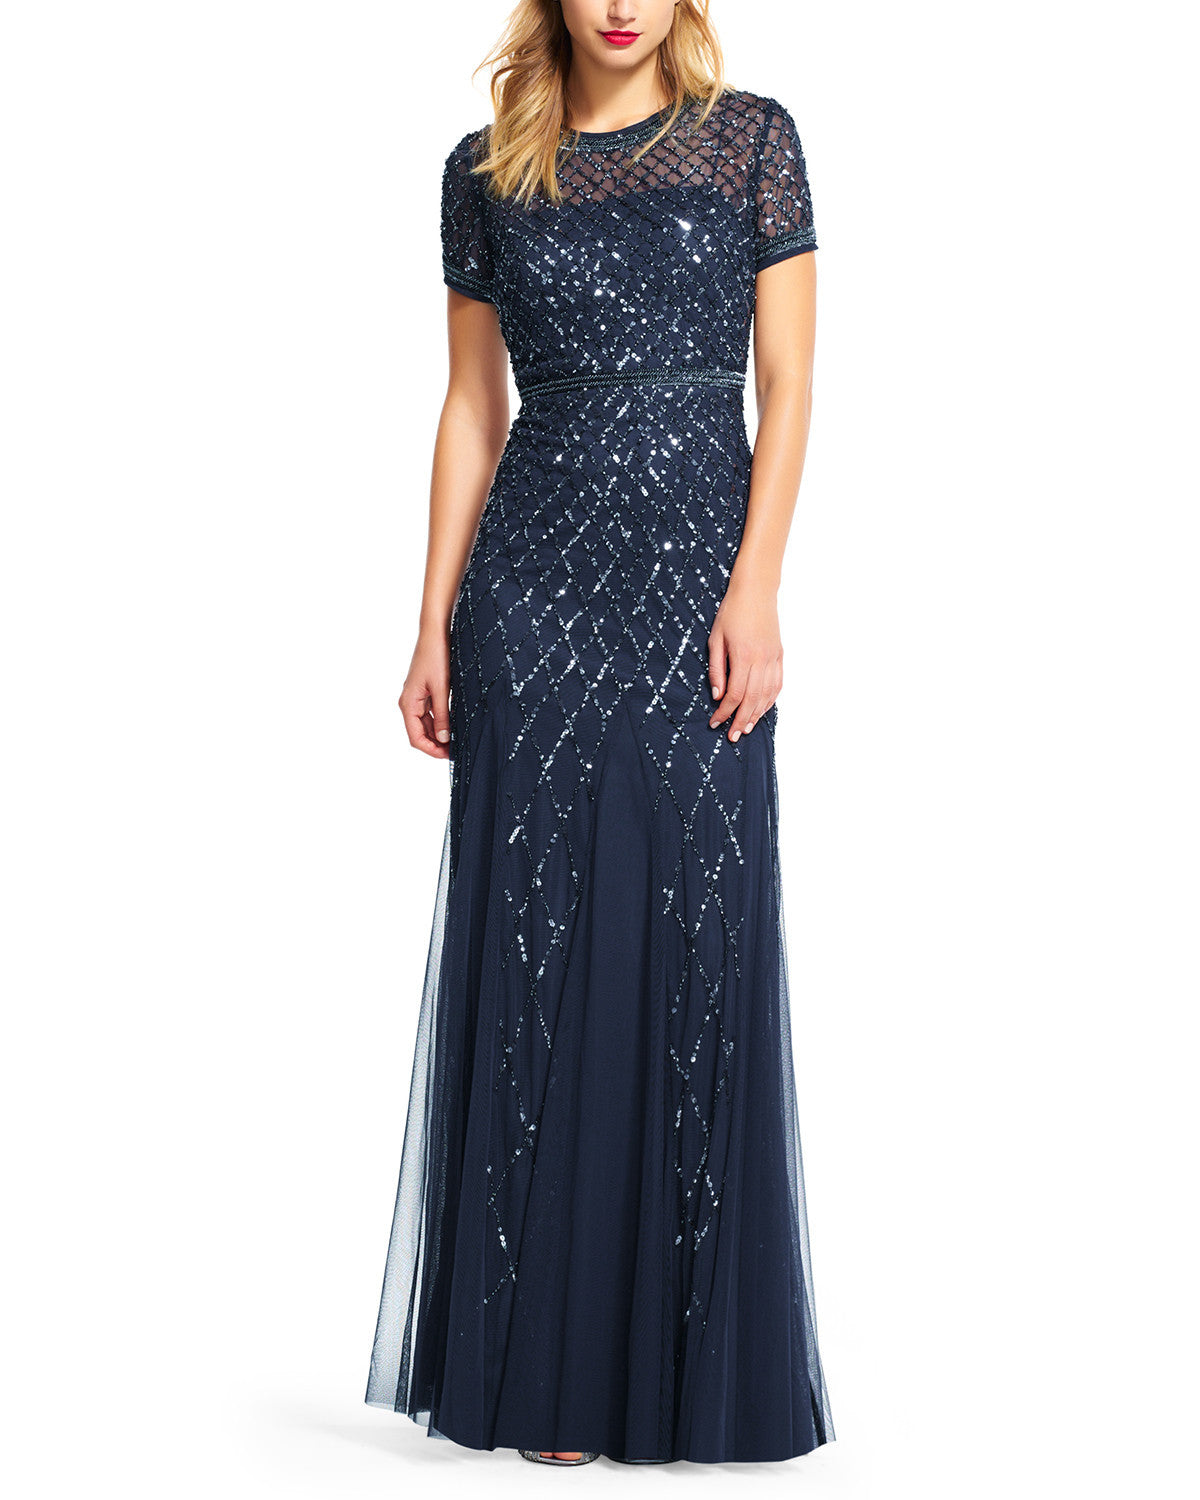 Adrianna Papell Cap Sleeve Beaded Gown in Navy Bridesmaid Dress ...